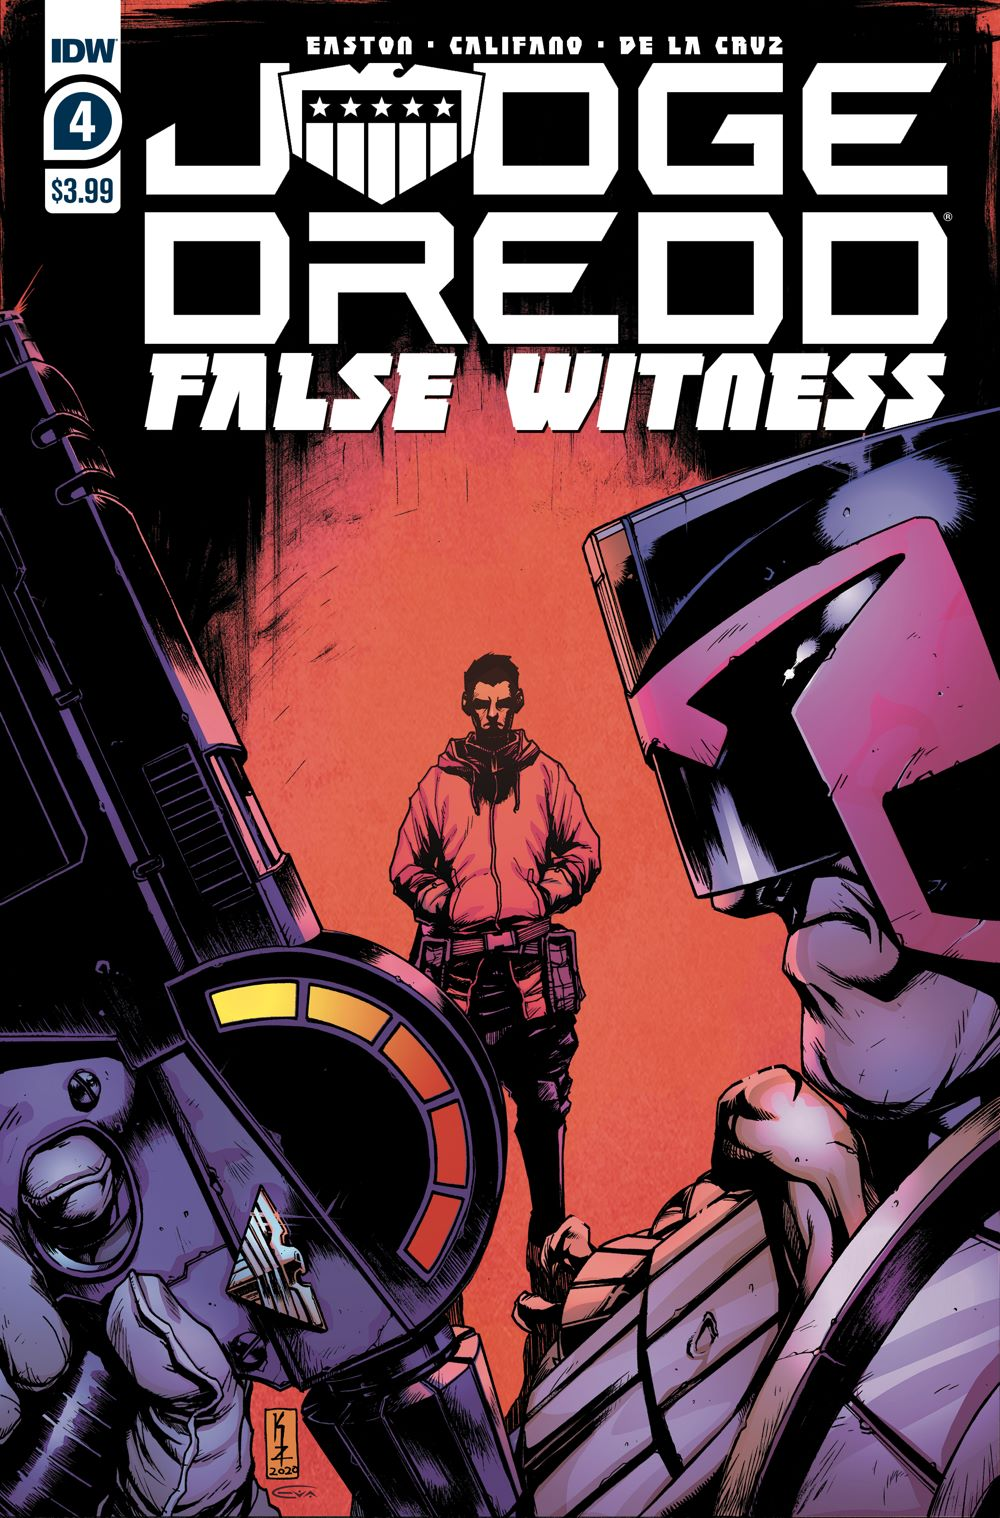 Dredd-FW04_cvr ComicList: IDW Publishing New Releases for 02/10/2021